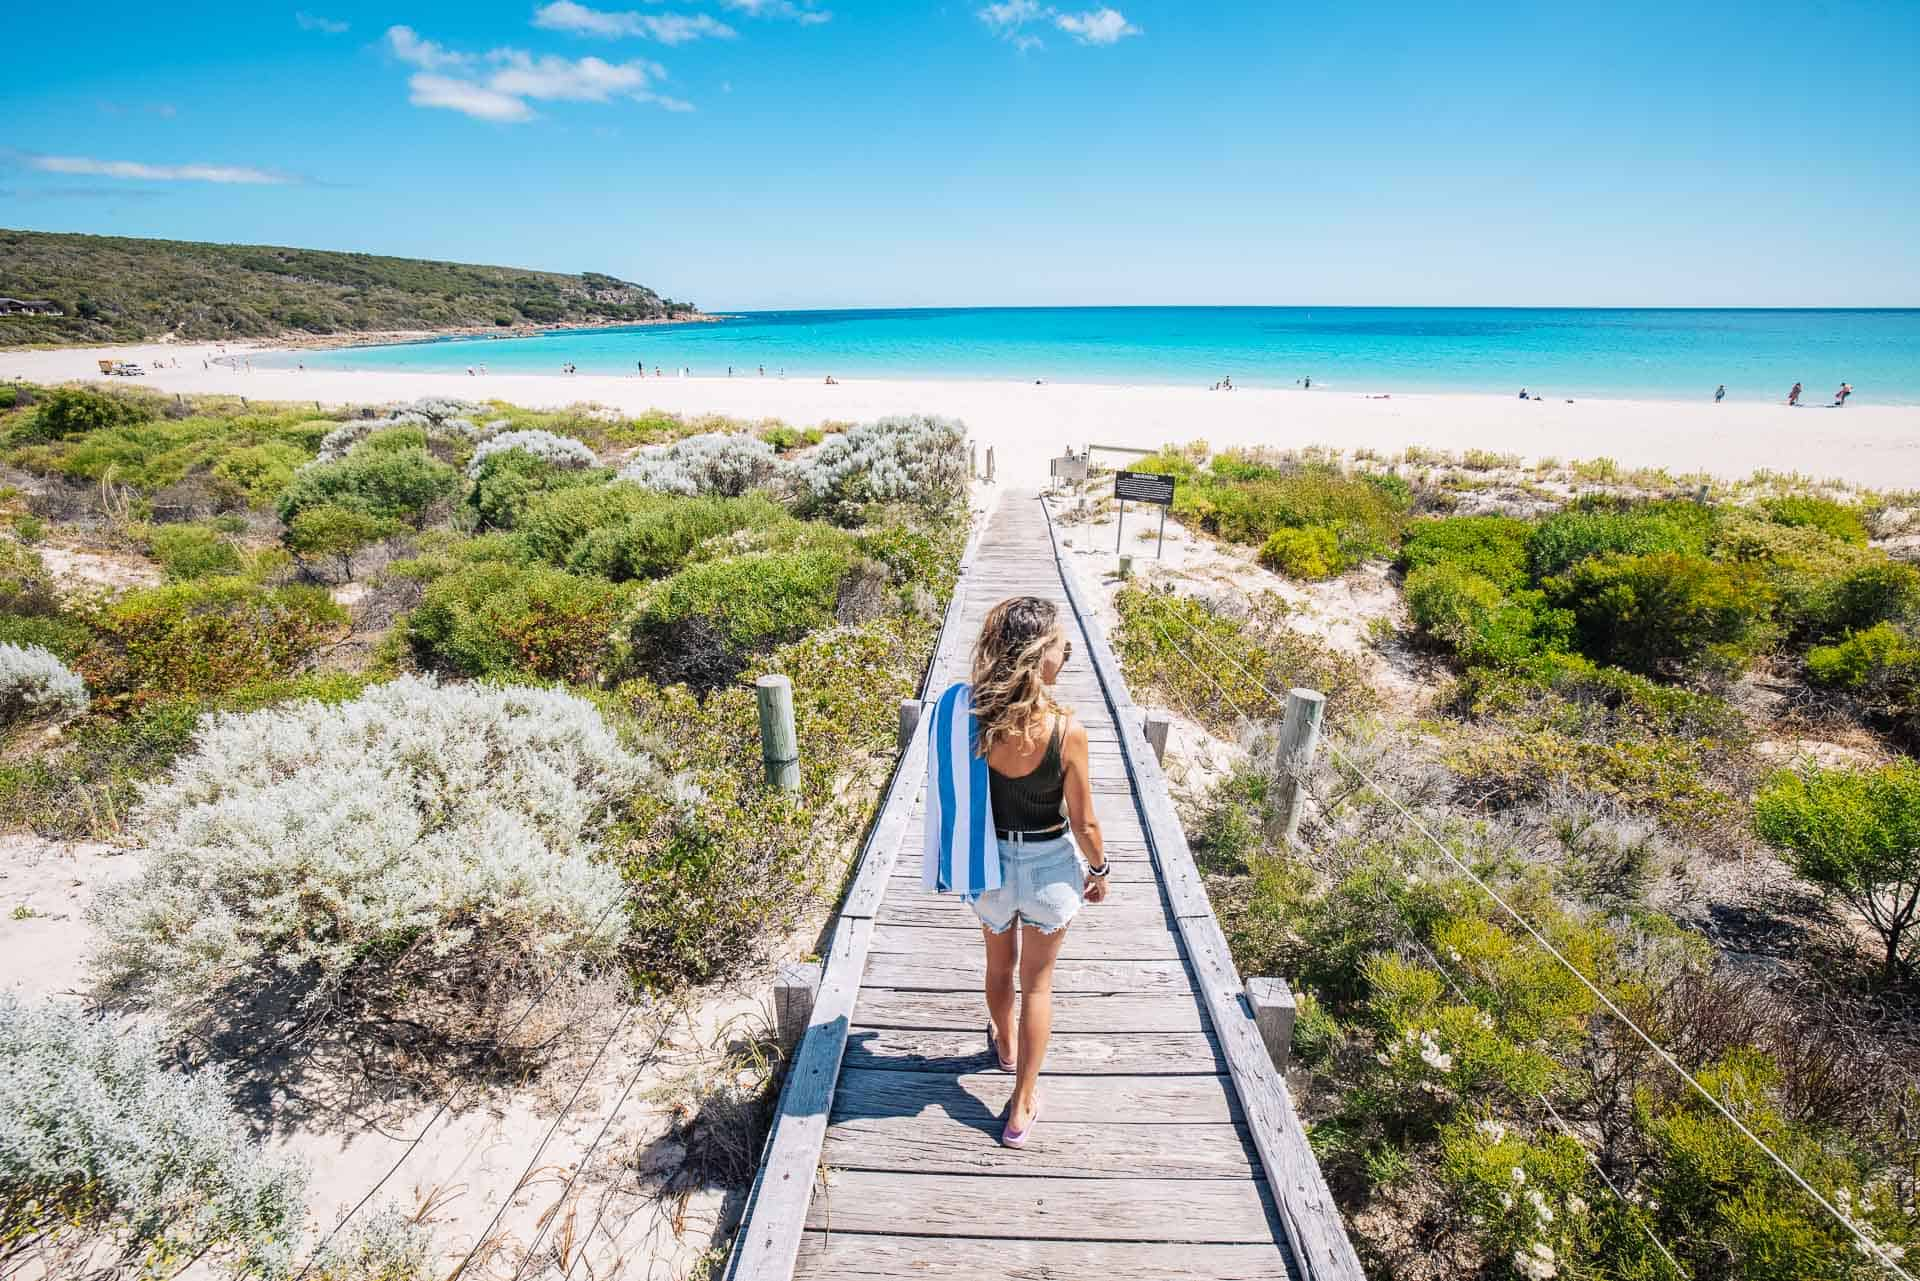 things to do in margaret river, what to do in margaret river, best things to do in margaret river, things to do margaret river, bunker bay